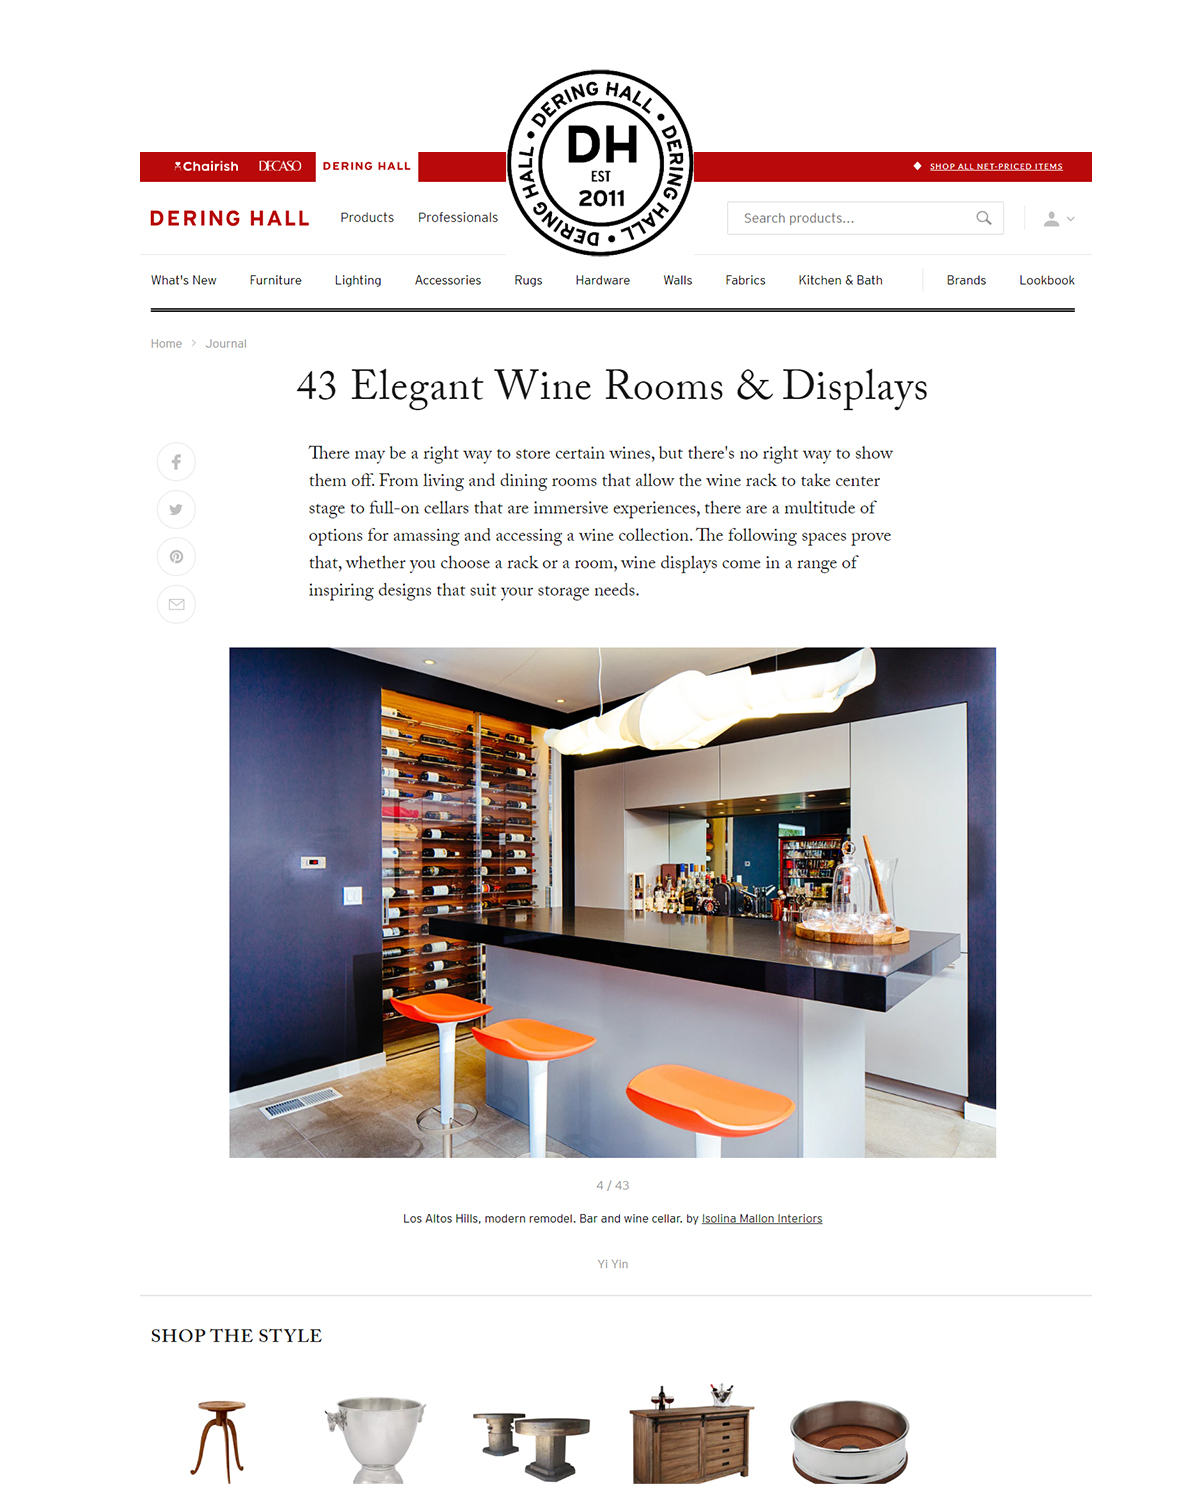 43 Elegant Wine Rooms & Displays   Our work was selected by the dering hall editorial about wine rooms and displays.   read more.